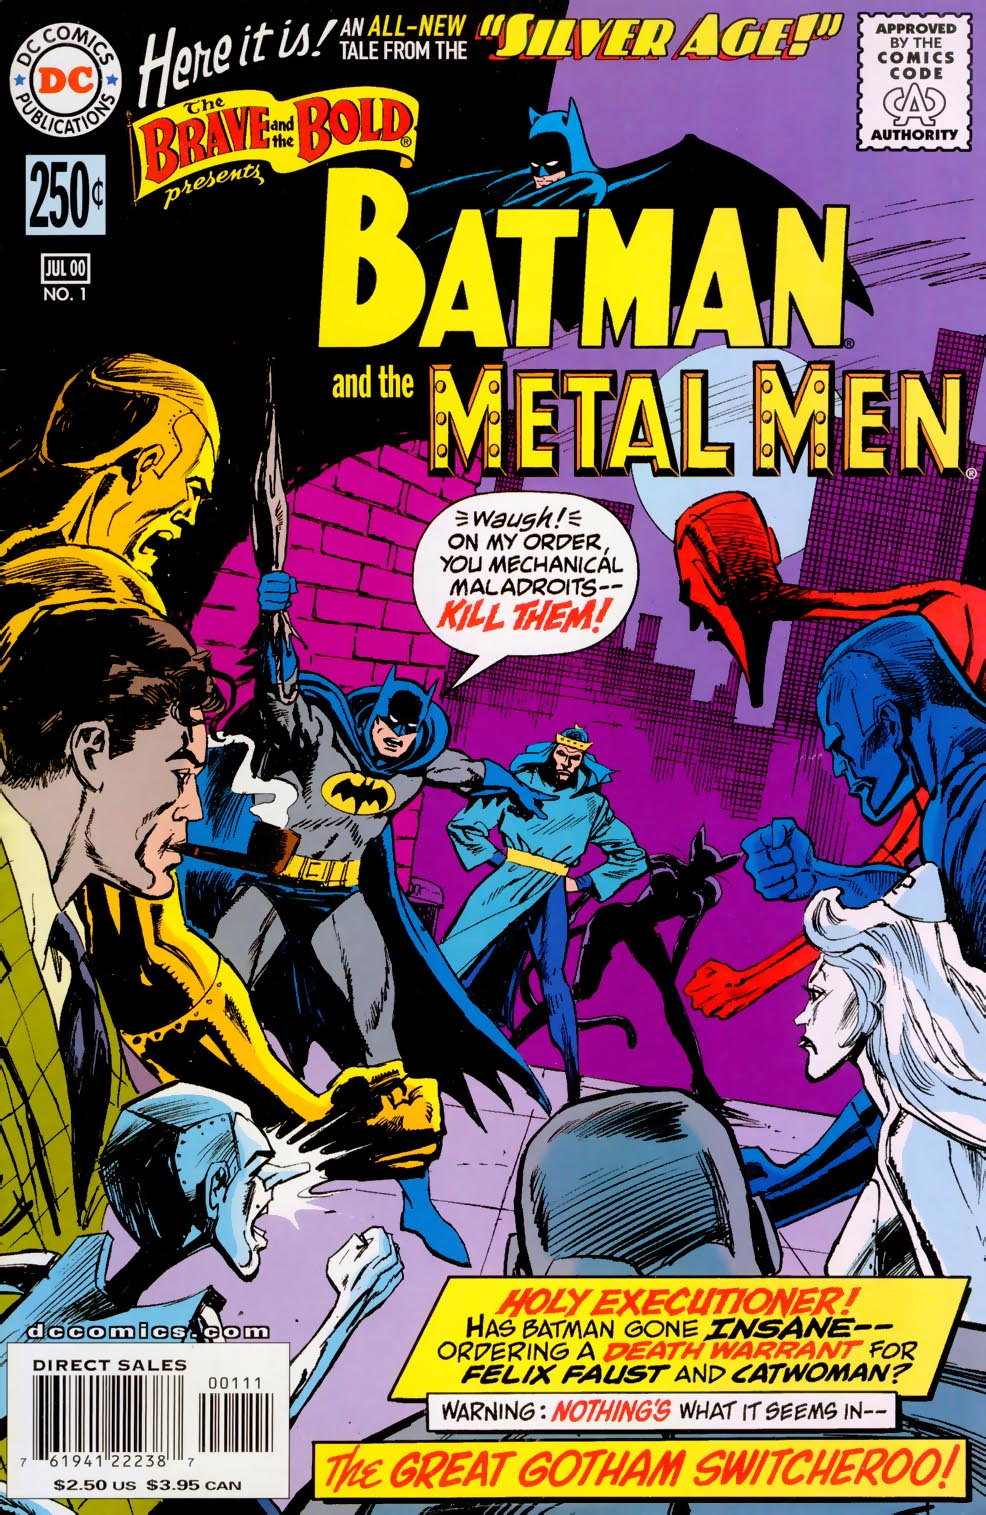 Read online Silver Age: The Brave and the Bold comic -  Issue # Full - 1